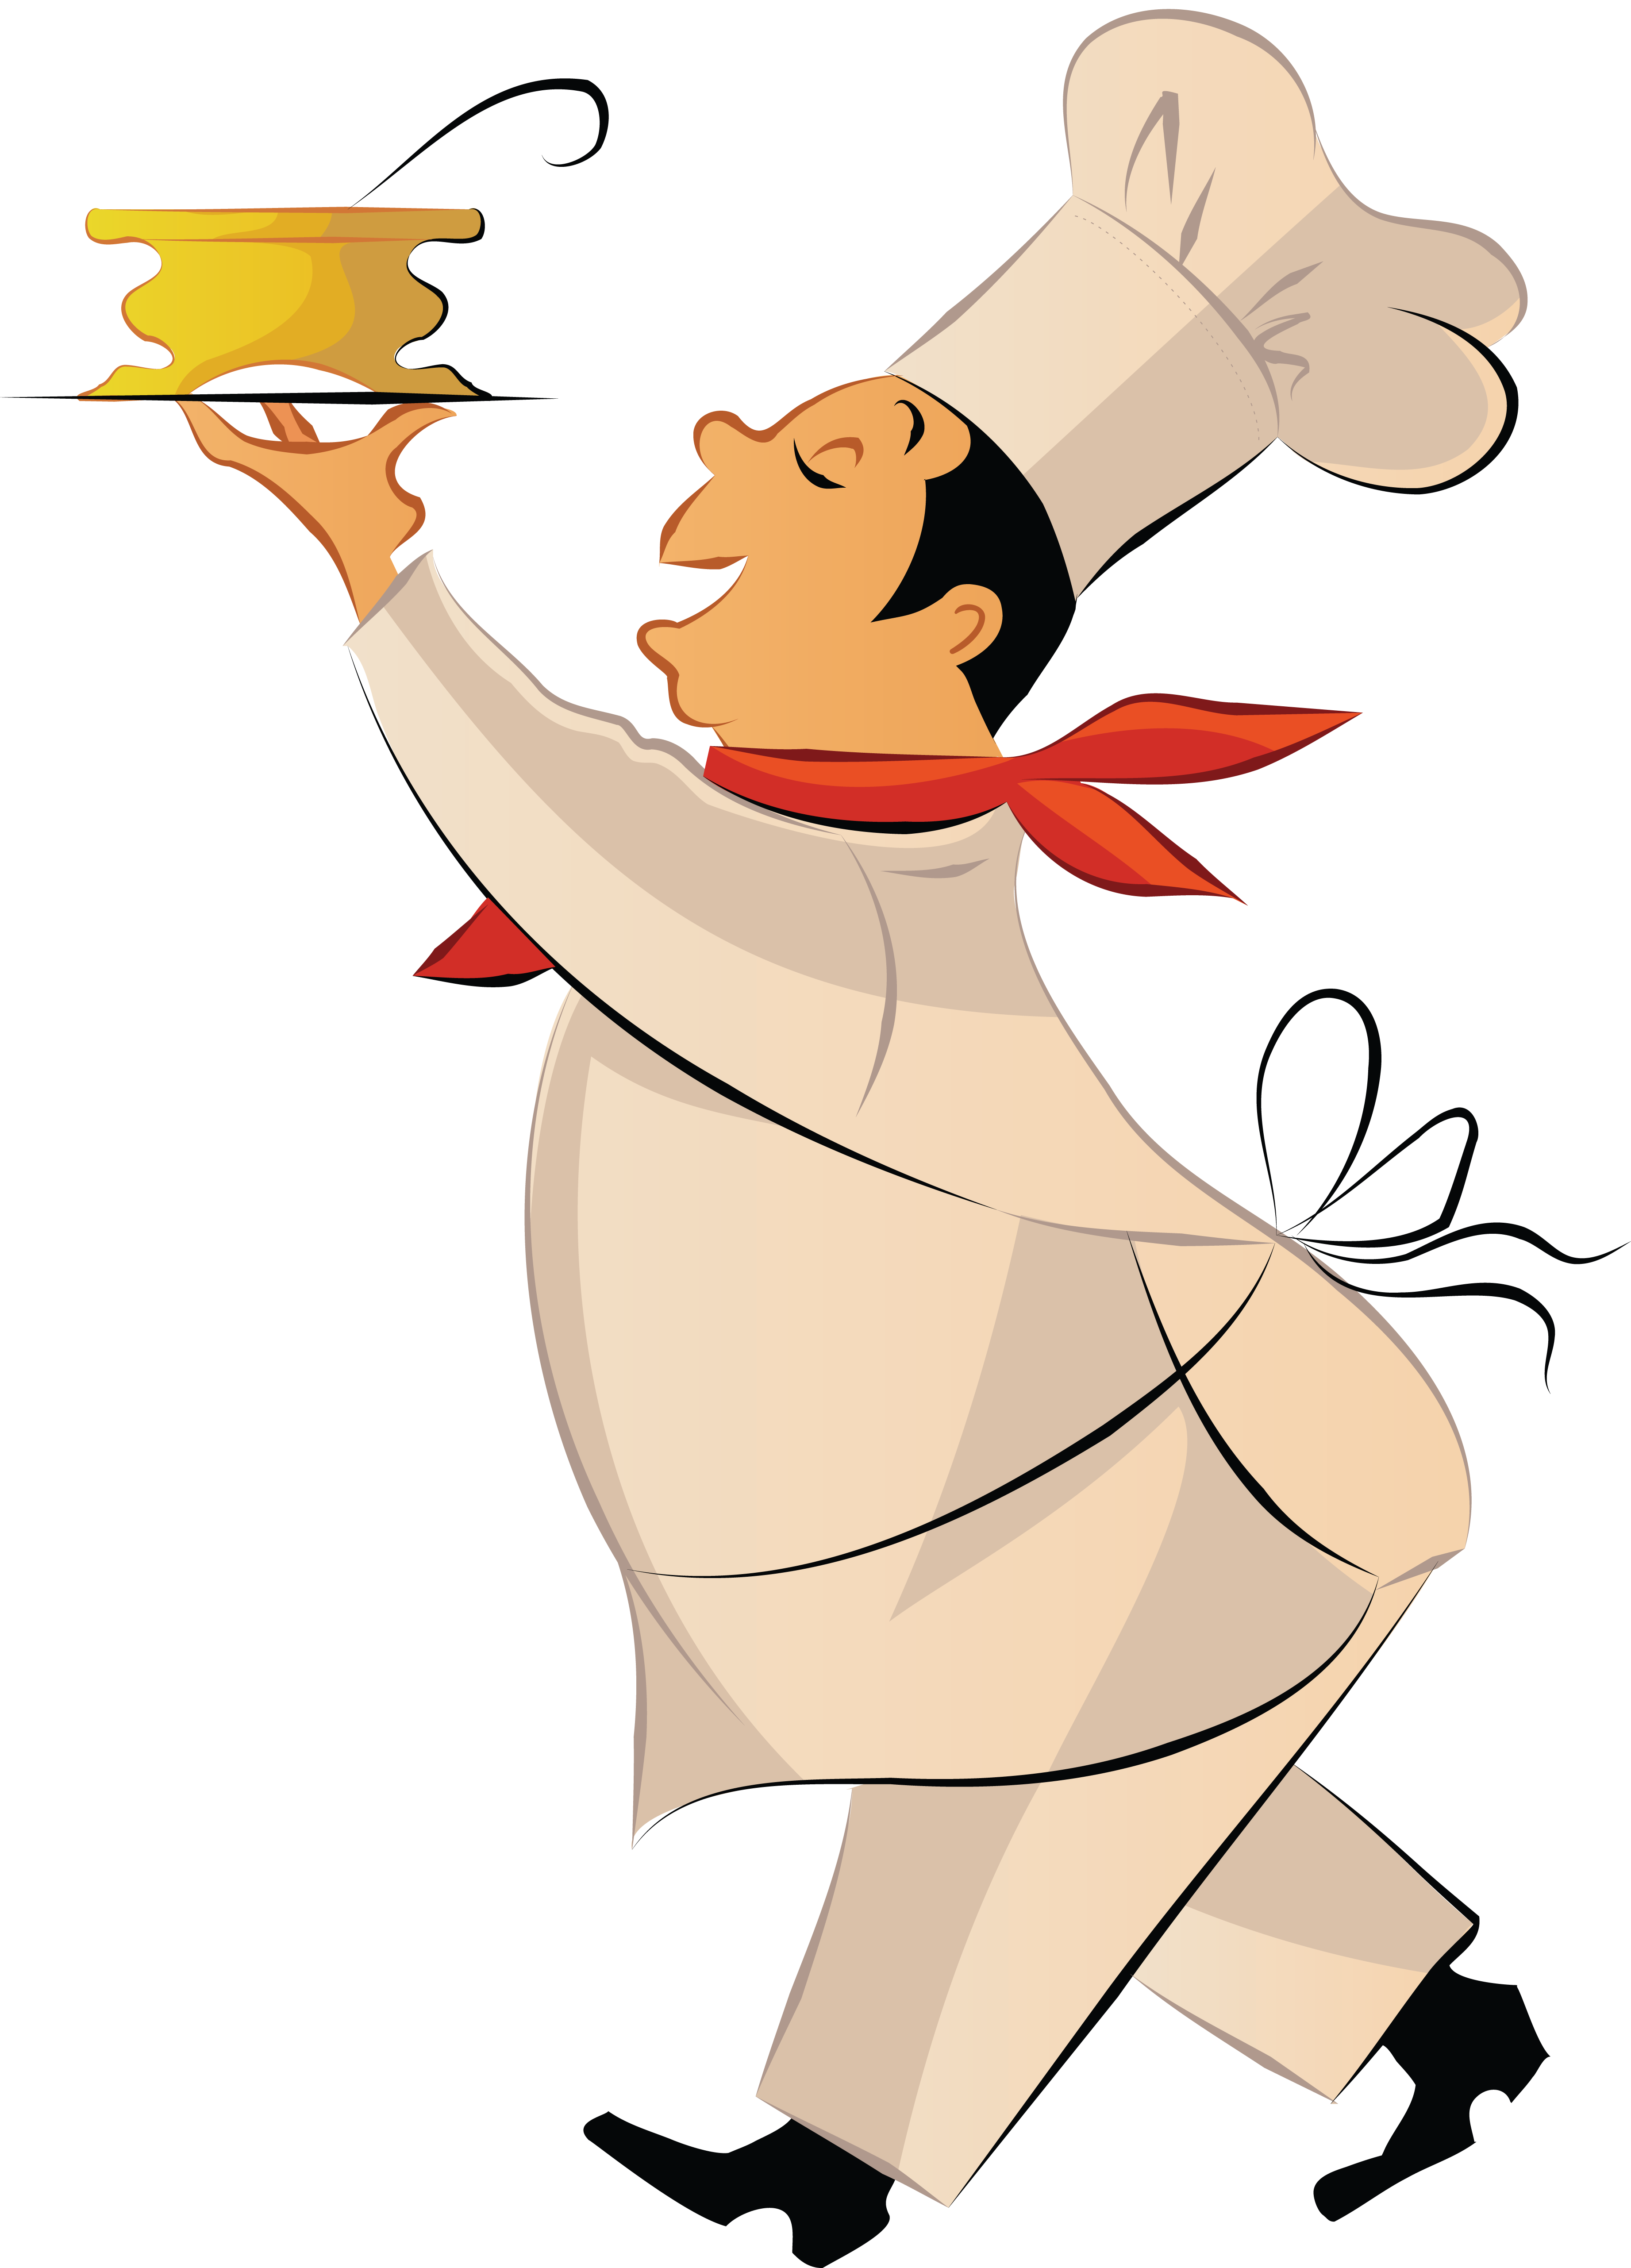 Chef png image purepng. Professional clipart male professional